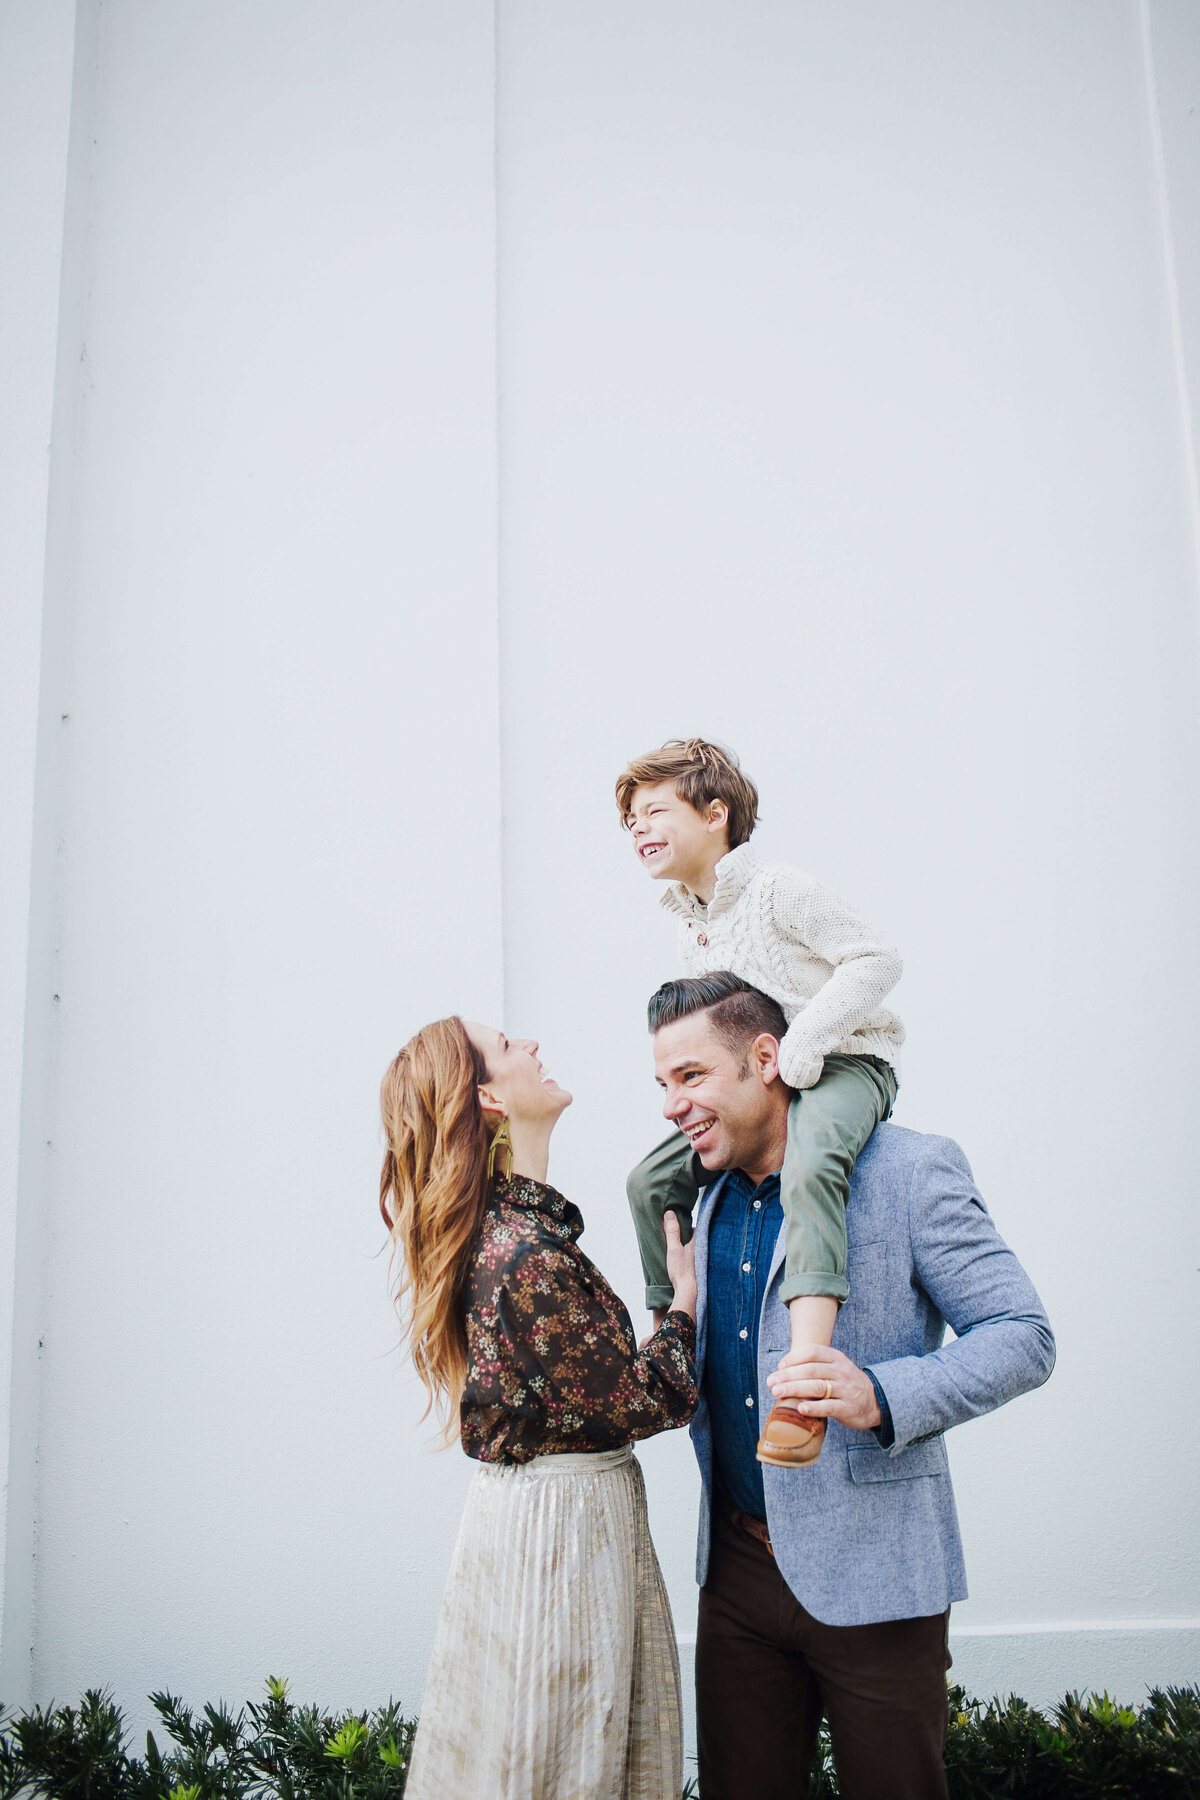 Izzy + Co. Athens and Savannah Family and Lifestyle photographer